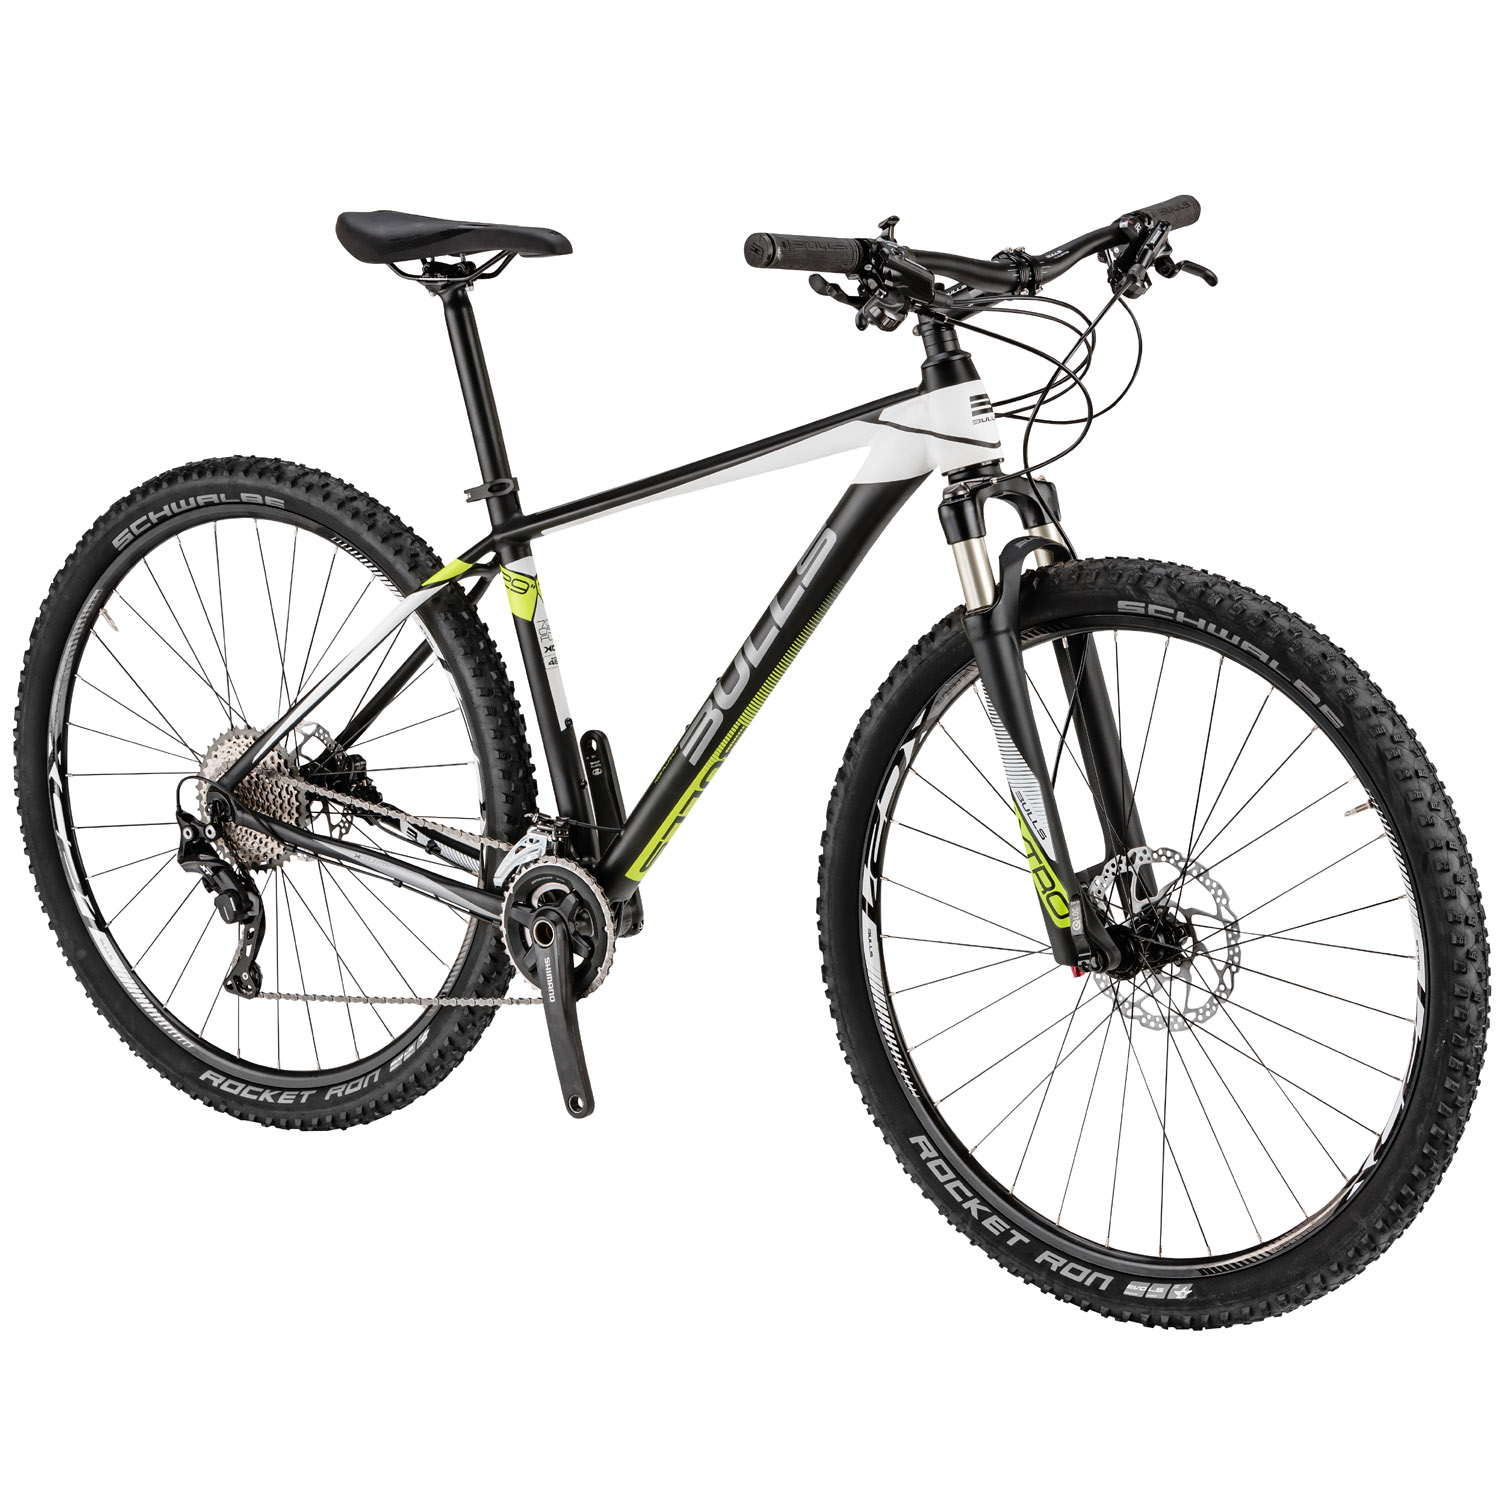 bulls copperhead 29 mountainbike hardtail 29 zoll schwarz. Black Bedroom Furniture Sets. Home Design Ideas